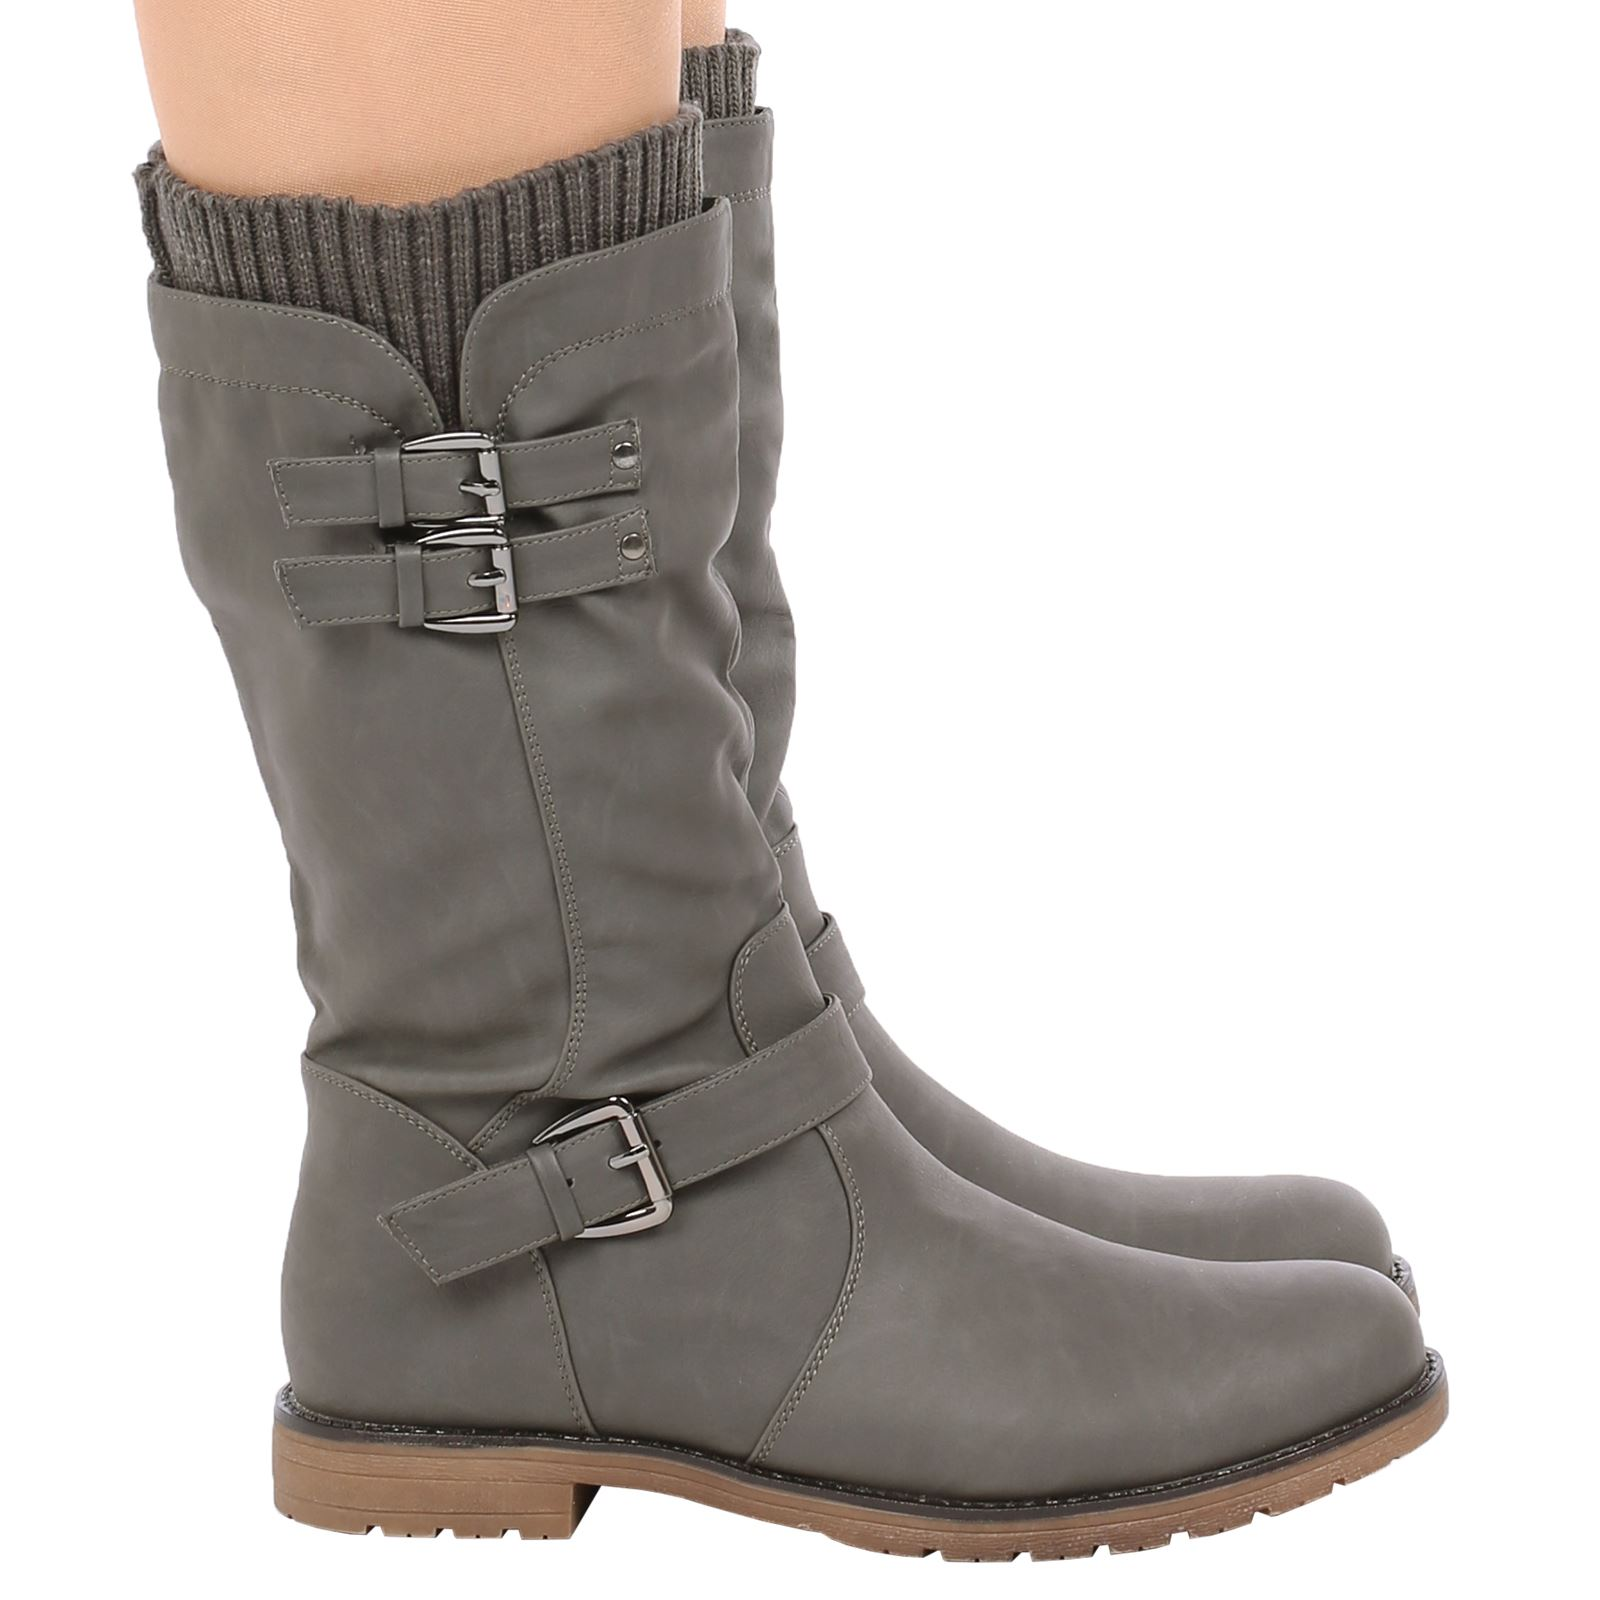 Natalia Womens Low Heel Buckle Zip Up Biker Sock Boots